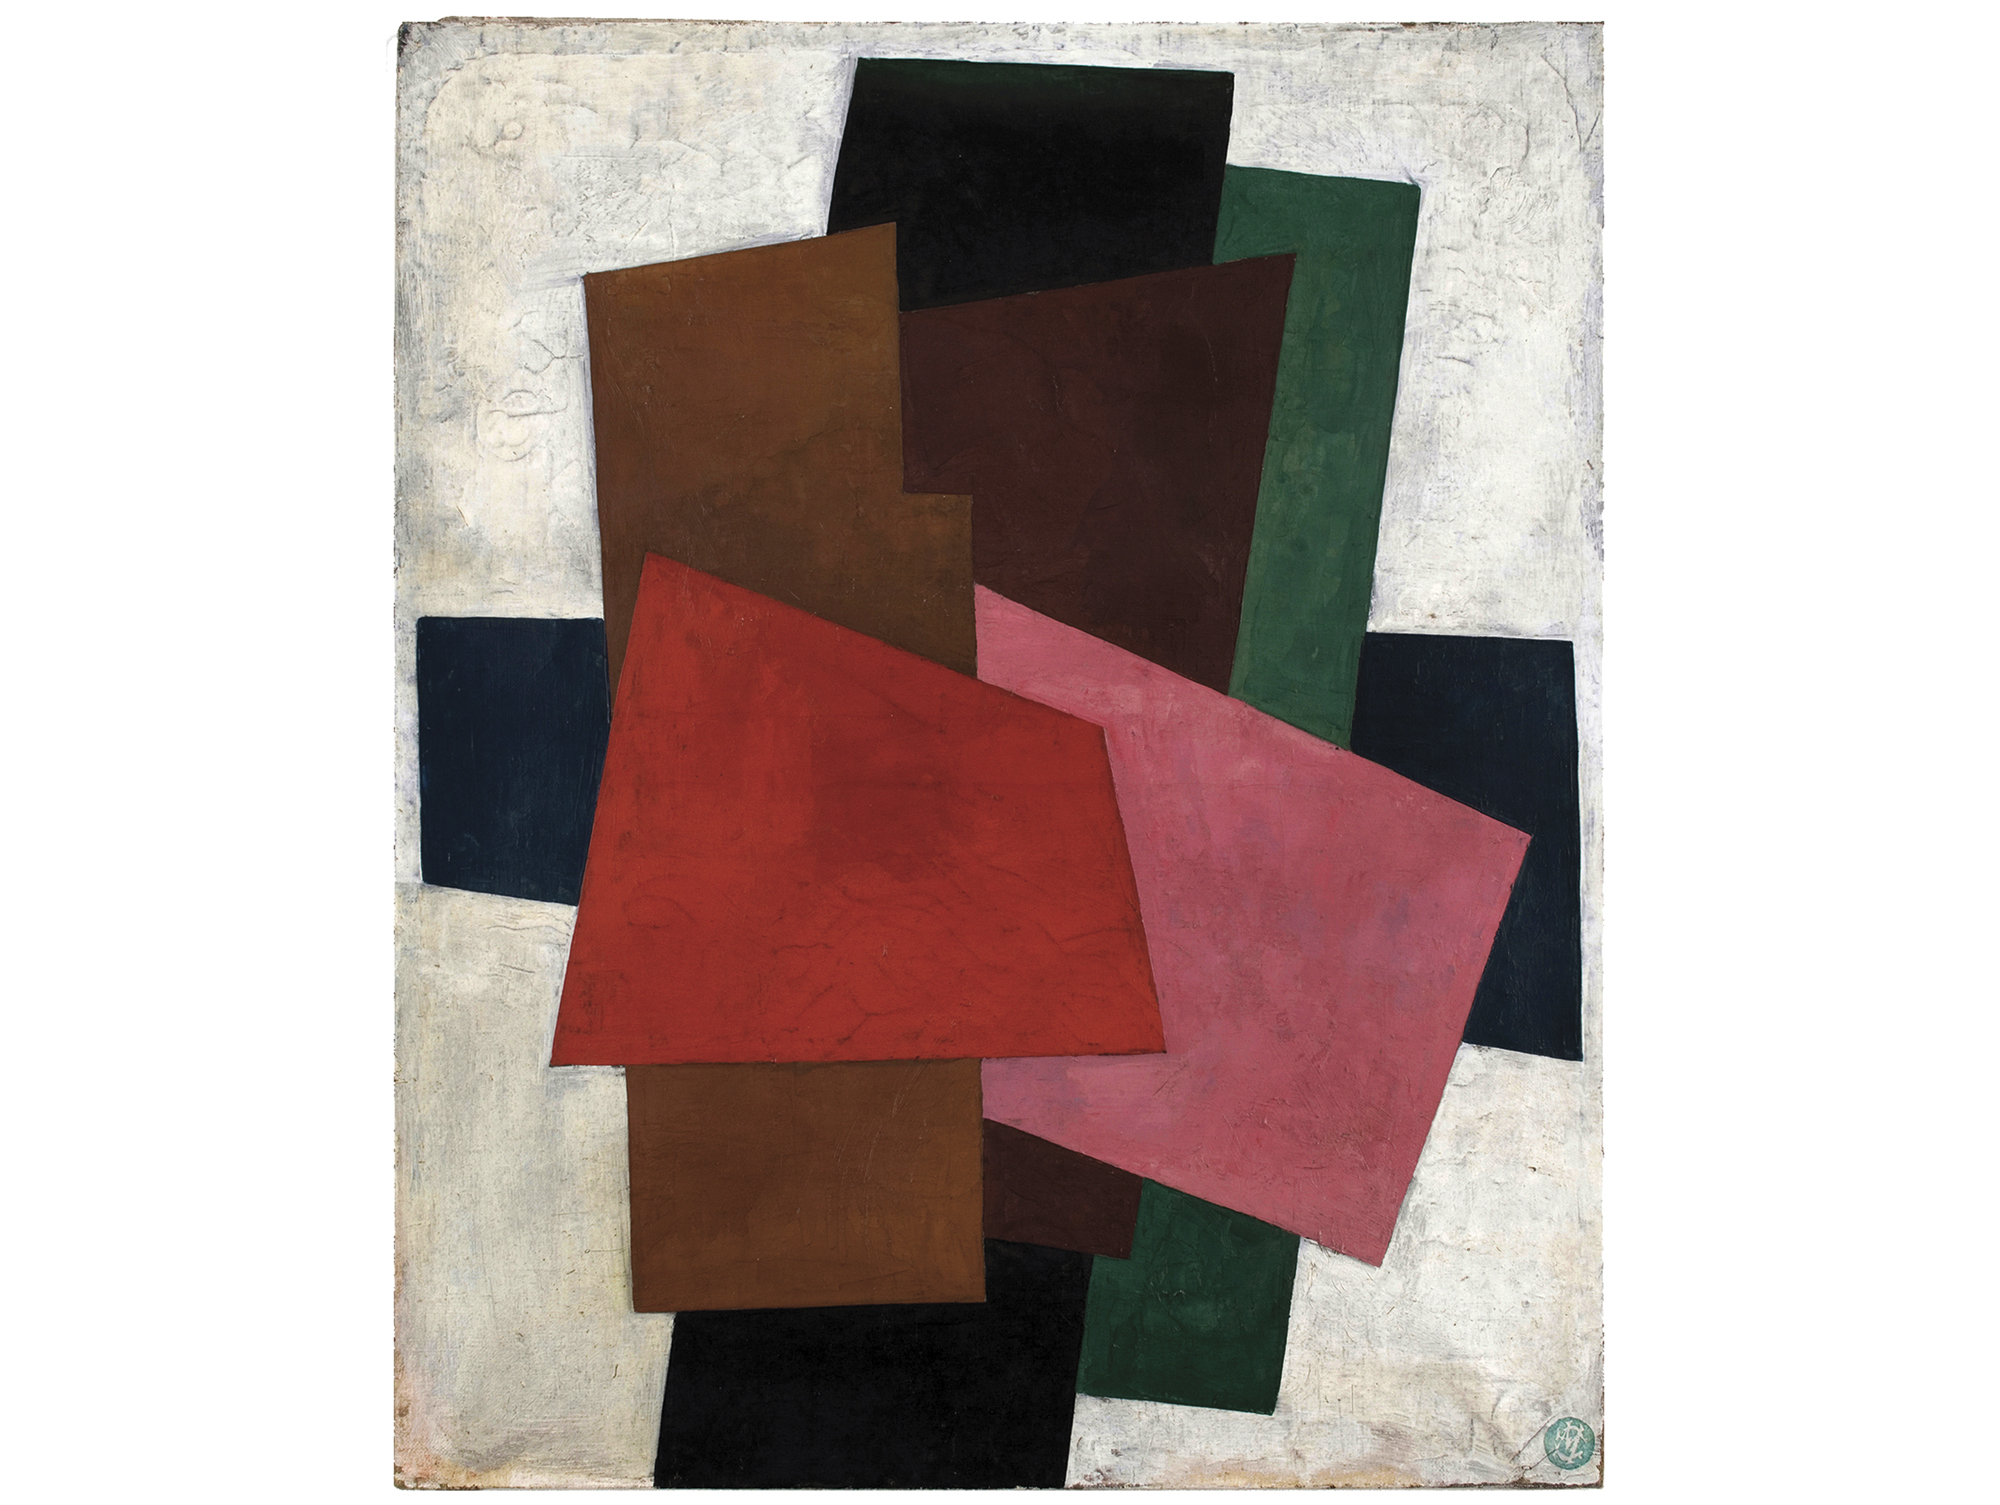 Unattributed. Unsigned. In the style of Lyubov Popova.Undeciphered ink stamp, lower right front.     Oil on canvas, 60 x 50 cm.